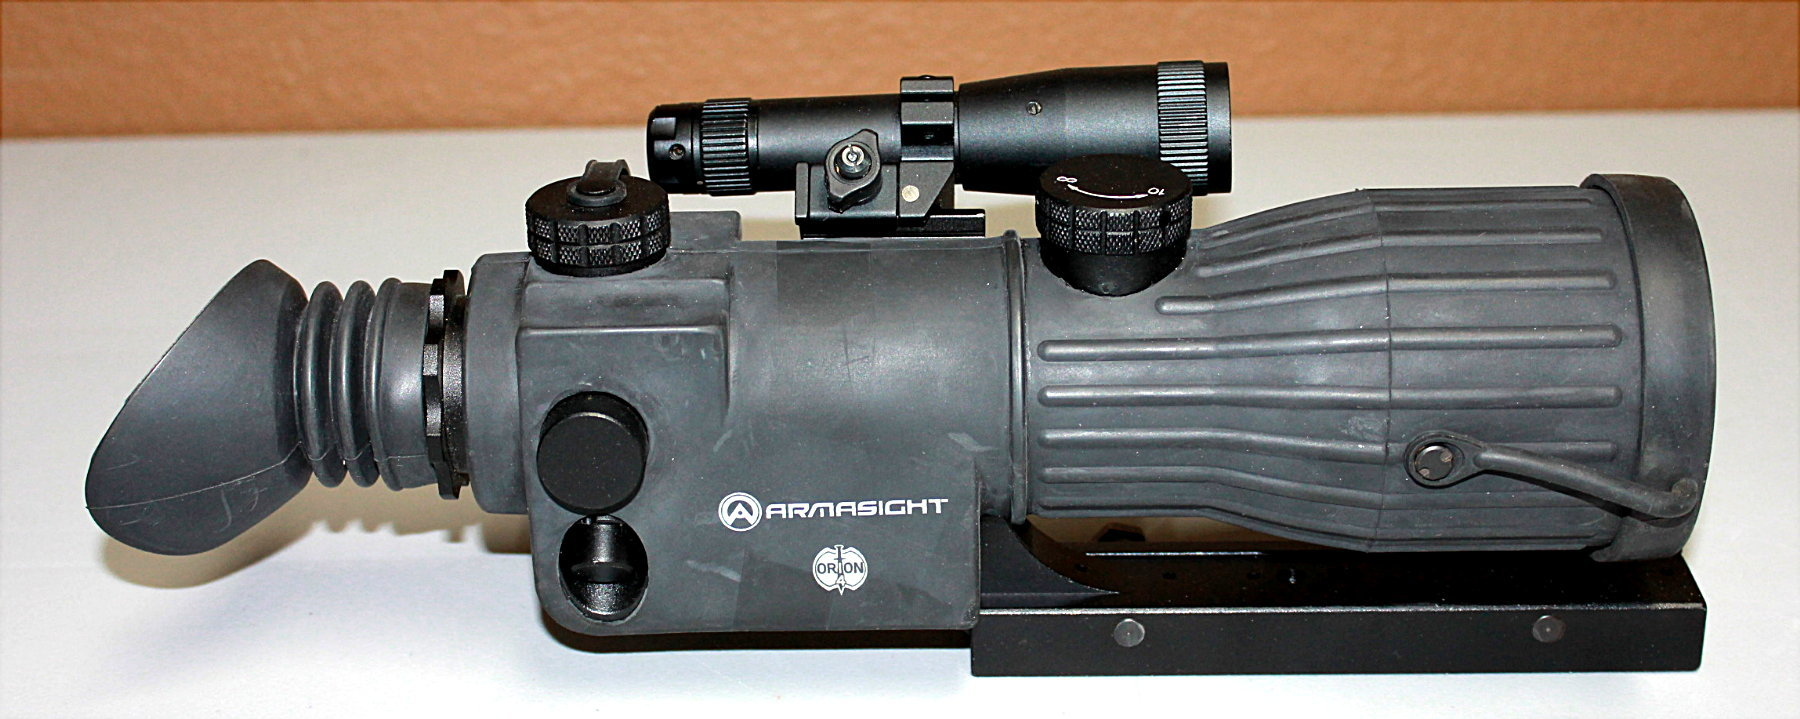 ARMASIGHT ORION 4X NIGHT VISION SCOPE